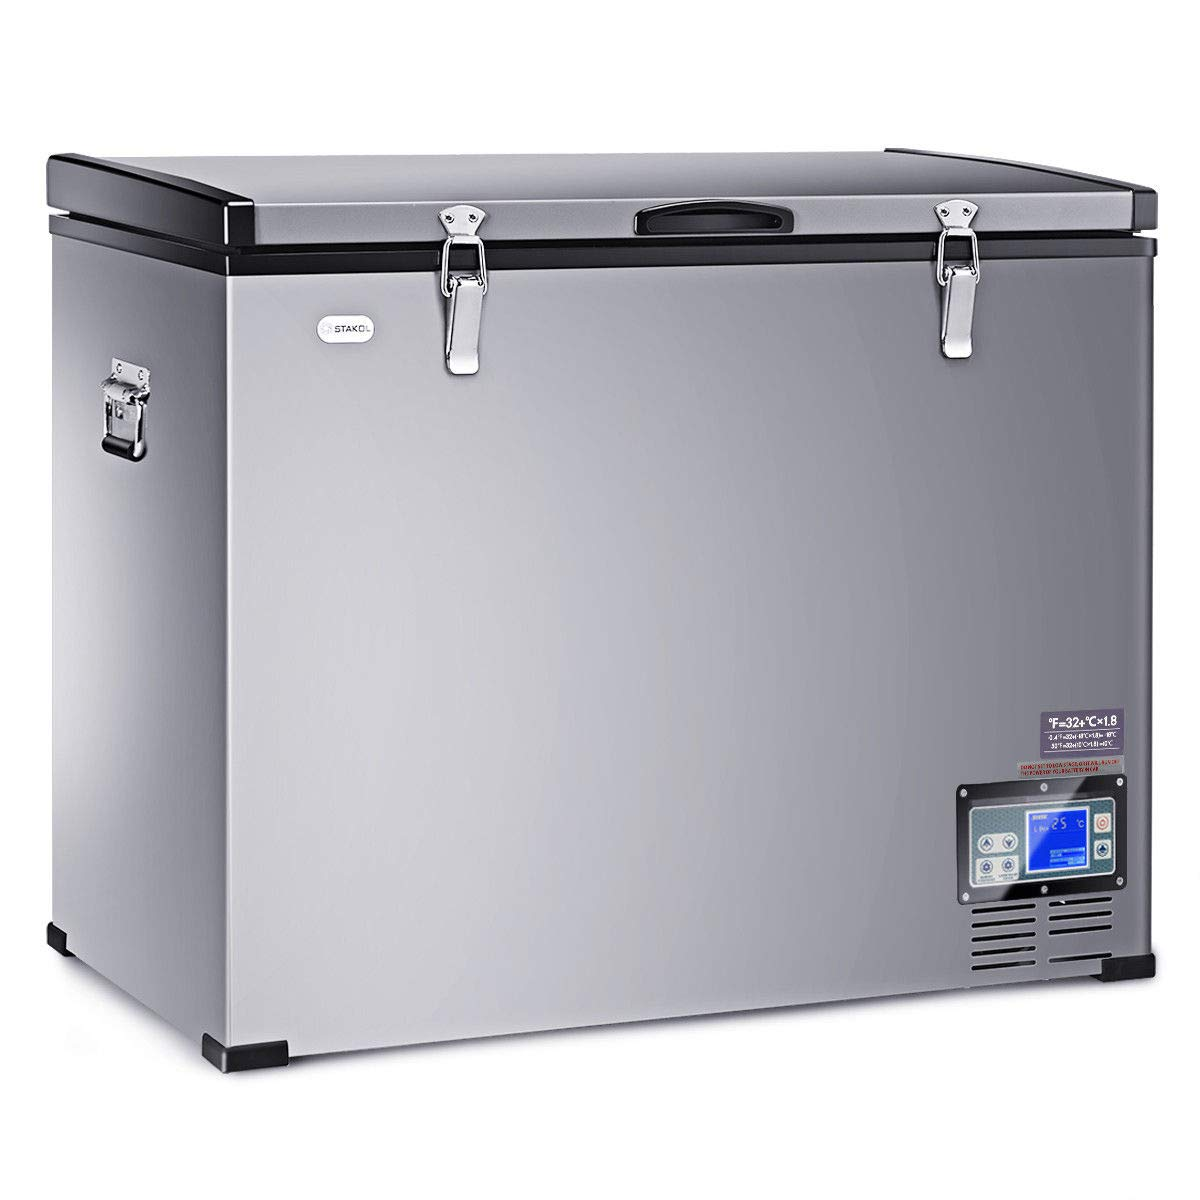 COSTWAY 121 Quart Portable Compressor Refrigerator Freezer Compact Vehicle Car Cooler Mini Fridge For Car and Home, Camping, Truck Party, Travel, Picnic Outdoor